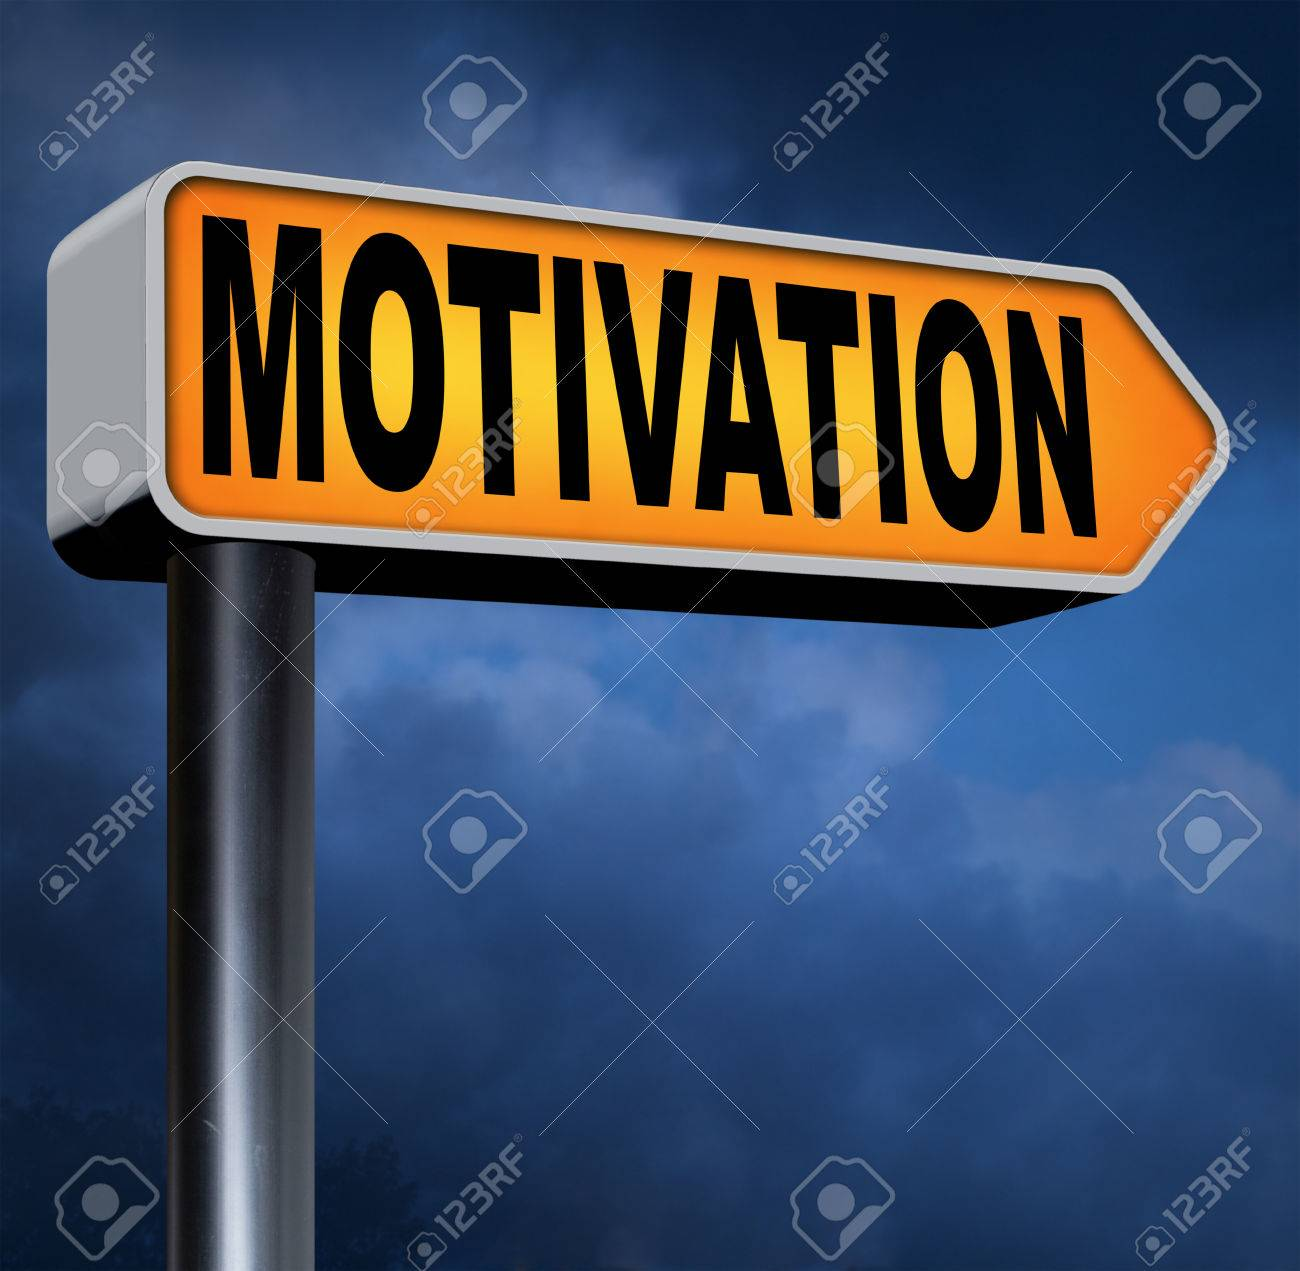 motivation work or job inspiration try again and try hard to go for it and to